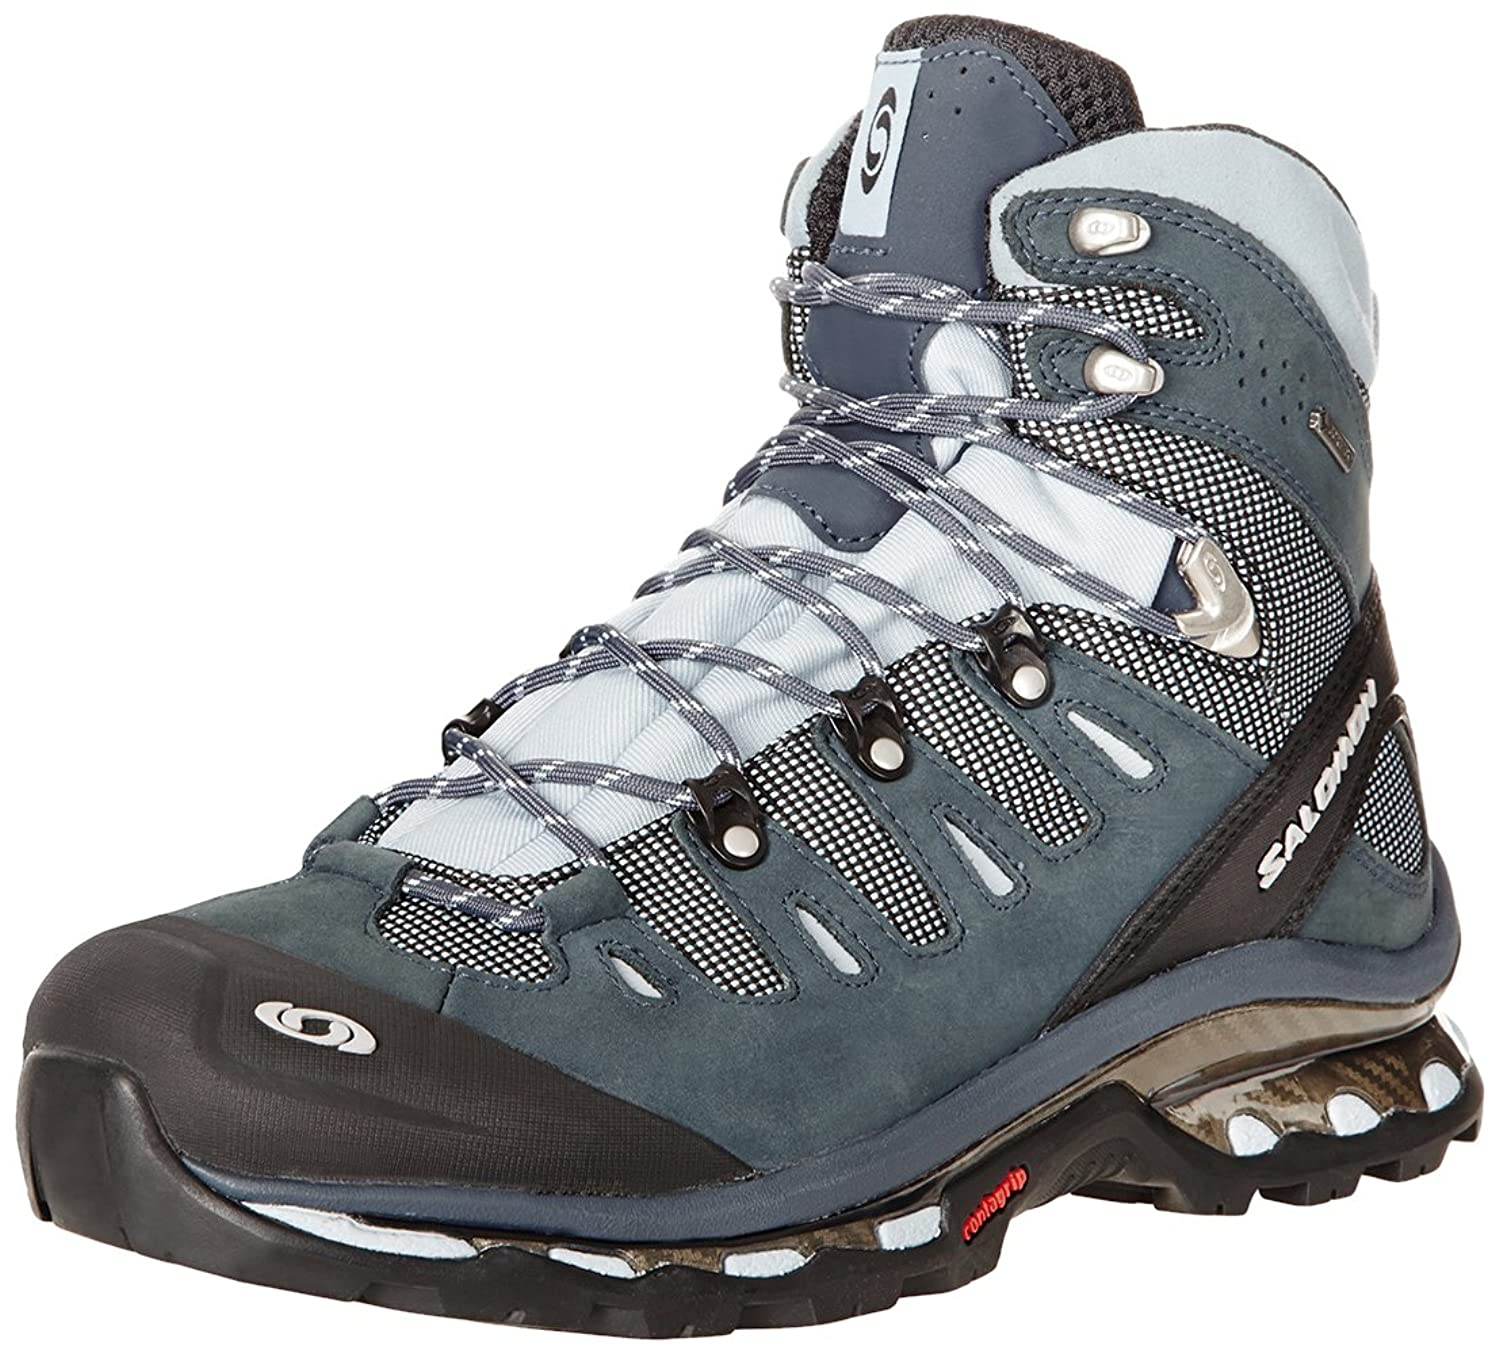 can a evolution hiking trusty production is shoes and alpine boots best very of its r for scarpa boast gtx in walking known companion comfortable outdoors lightweight you the comforter digital trends find